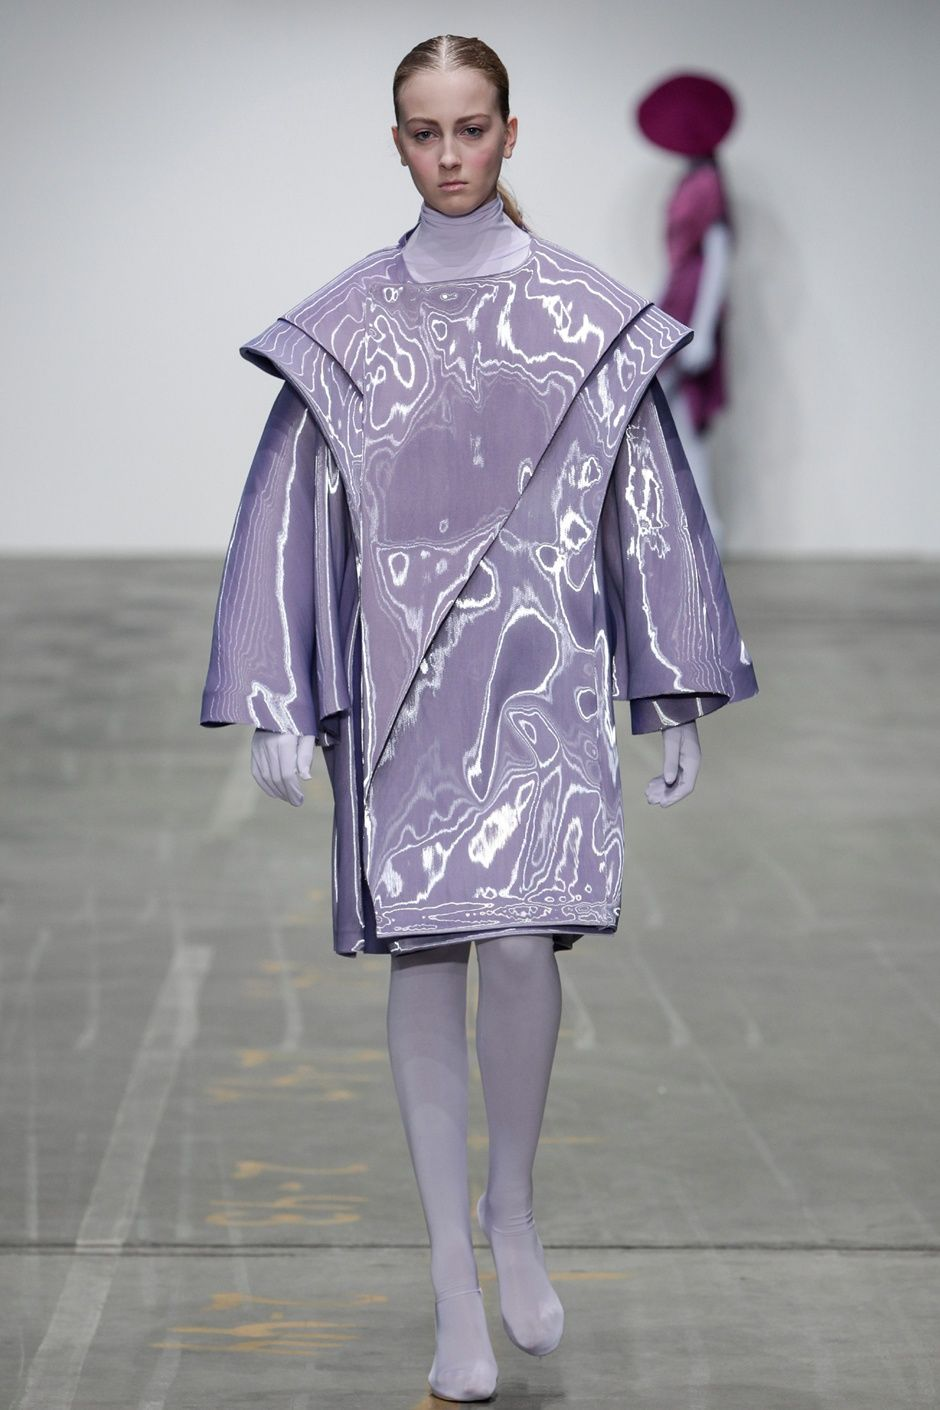 shape of jacket-----Futuristic Fashion, JEF MONTES ...